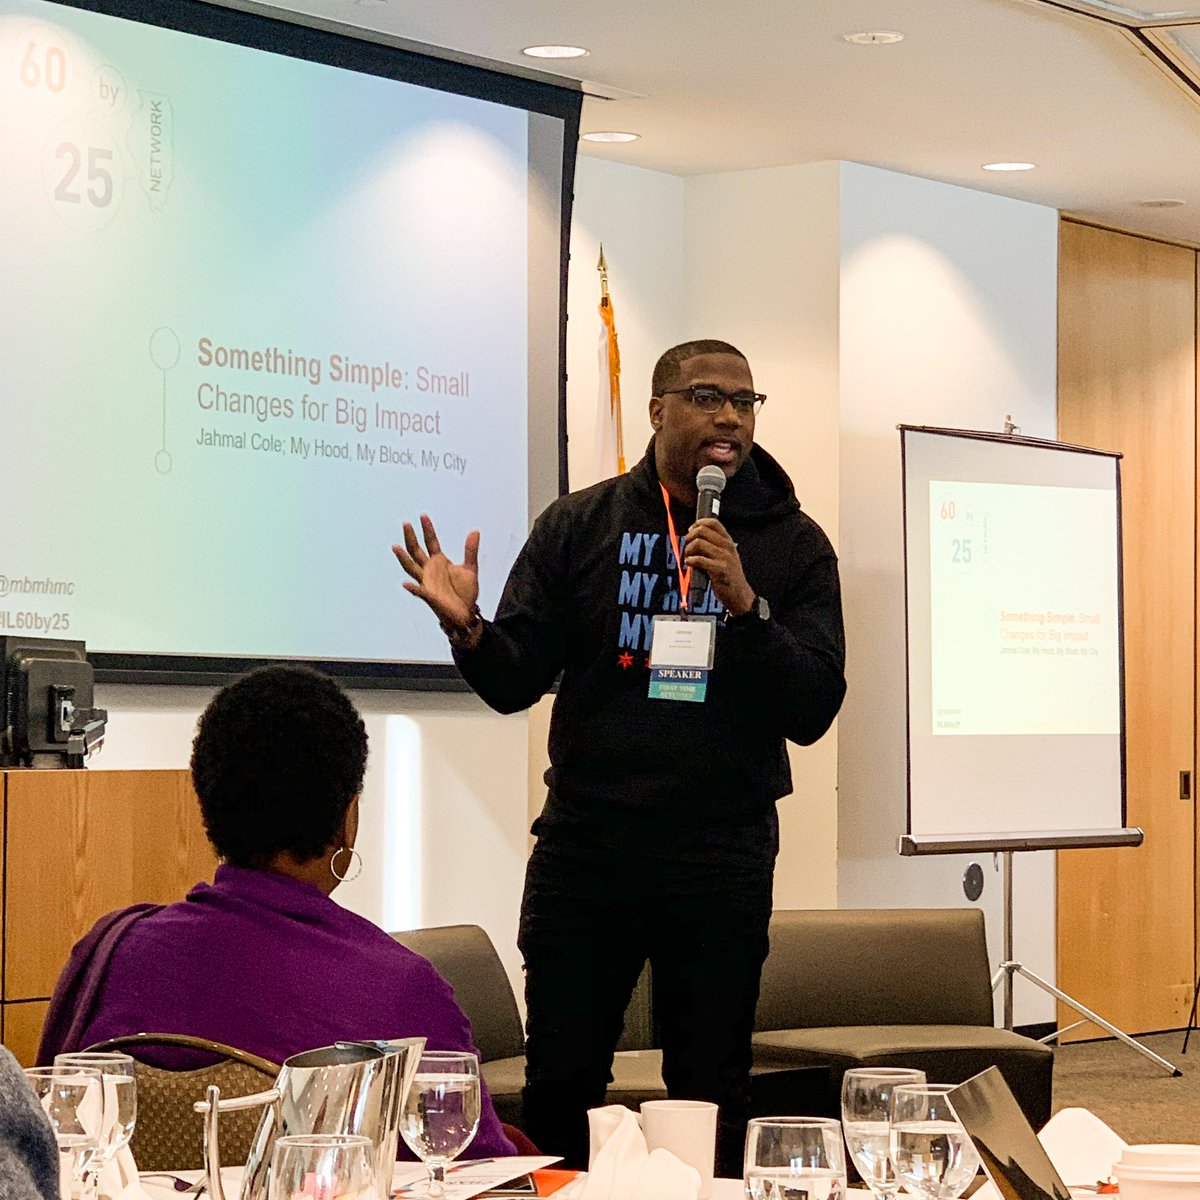 """Today's challenge comes from @mbmhmc """"What's something simple I can do to make a positive impact on my block?""""  Thank you @JahmalCole for calling out the necessity of on the ground work for equity and change in Chicago.   #IL60by25 #theISTI #STEMeducation pic.twitter.com/4yxxvbBtei"""